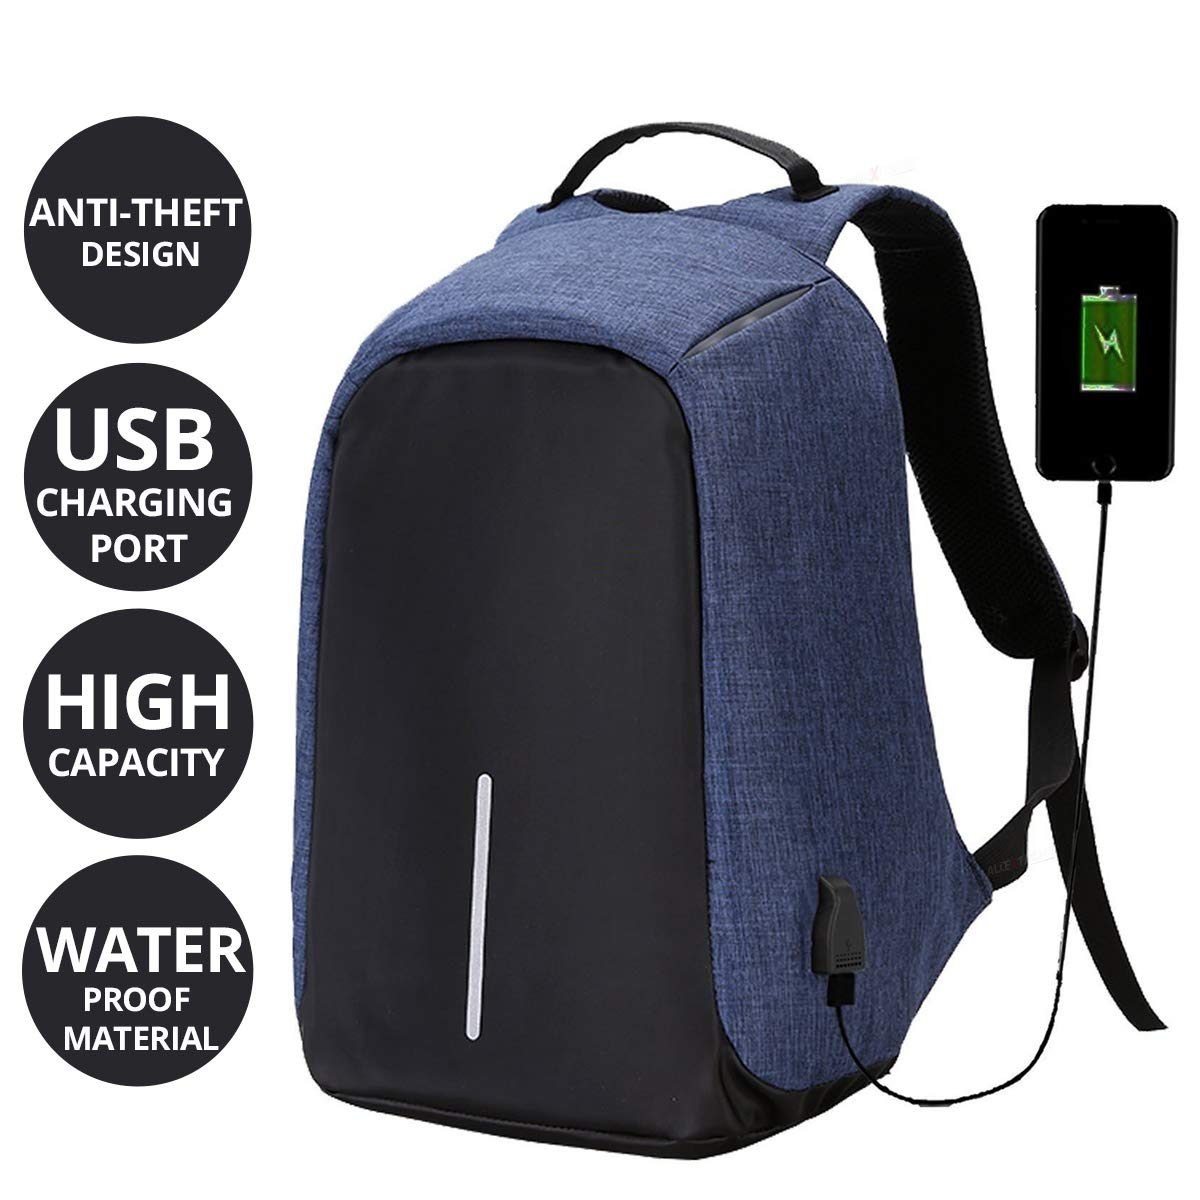 de9b90cc04 AllExtreme EXATBP1 Anti Theft Laptop Bag 14 Inch Water Resistant Office  Backpack with USB Charging Port (Blue) - Buy AllExtreme EXATBP1 Anti Theft  Laptop ...